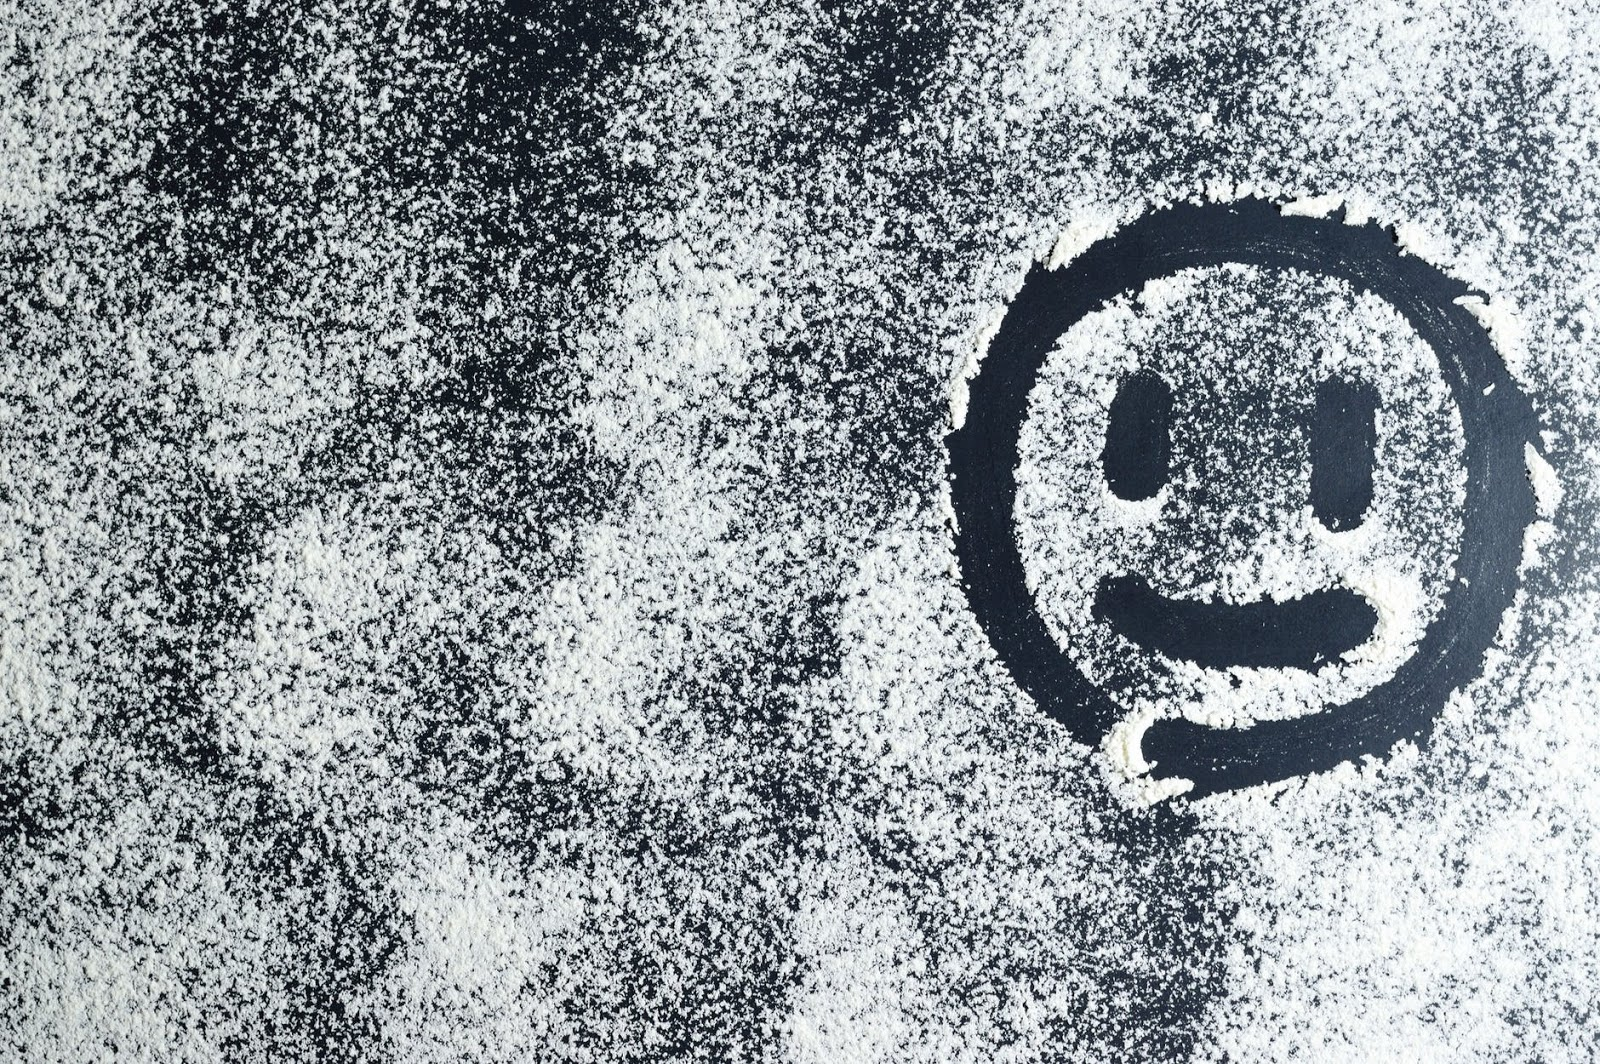 Smiley face on window drawn in the snow